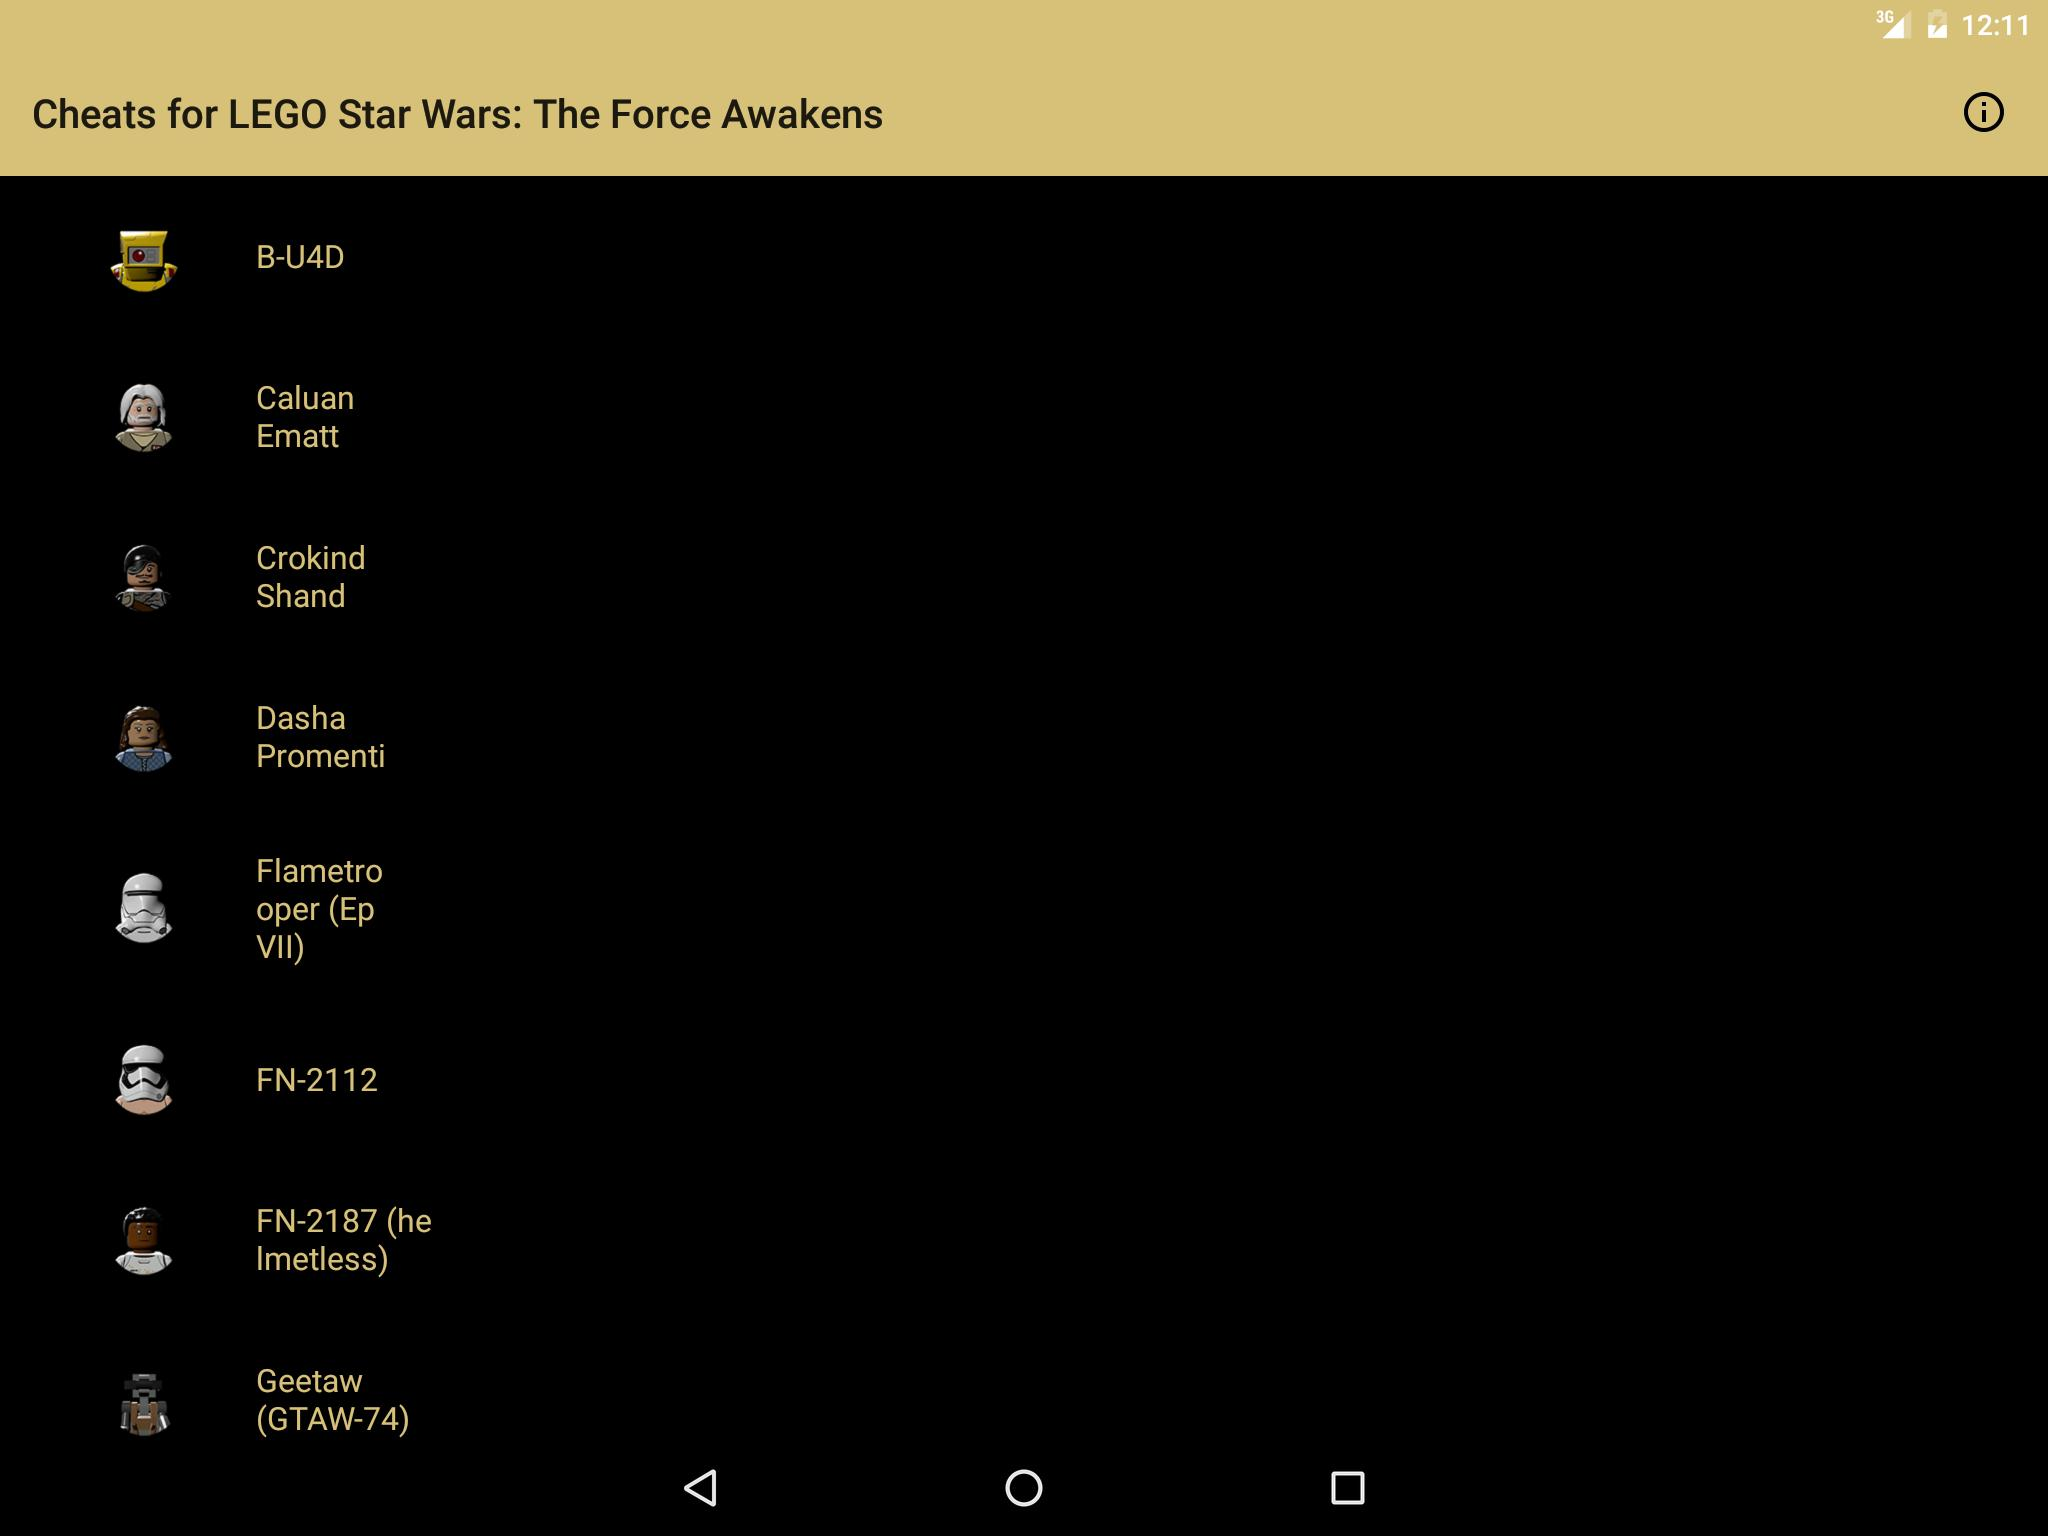 Cheats for LEGO Star Wars: TFA for Android - APK Download